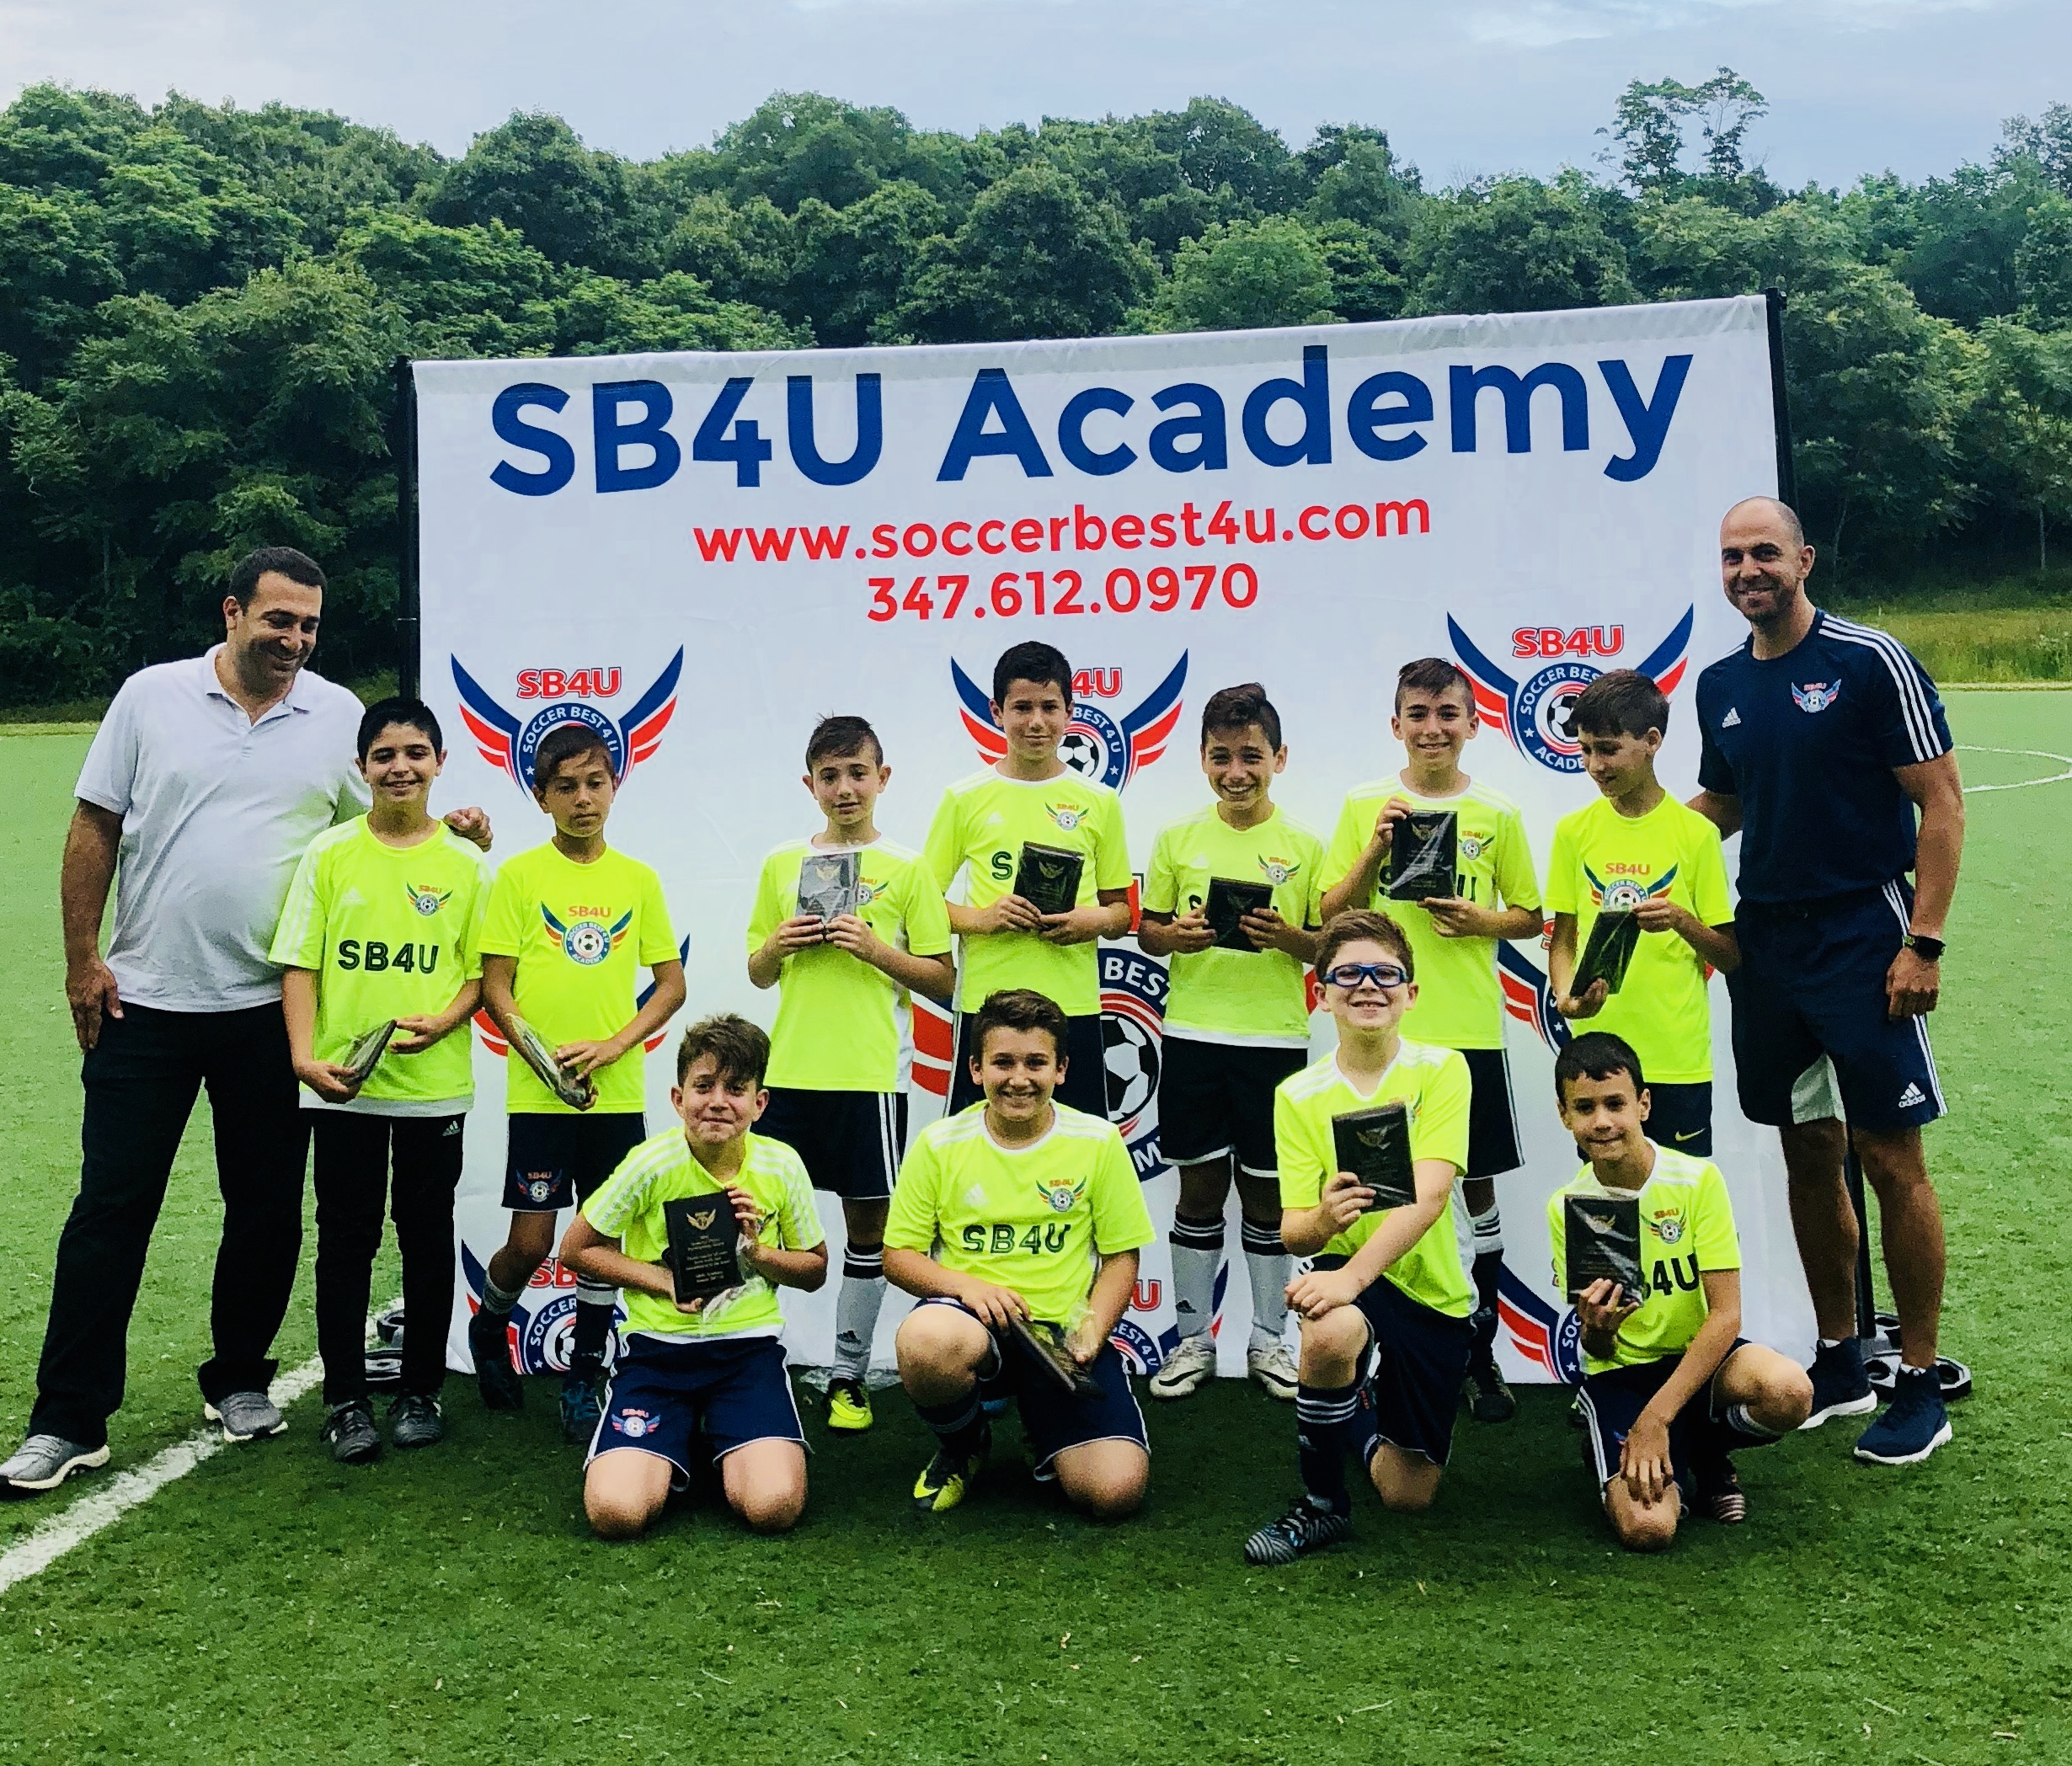 sb4u academy team photo